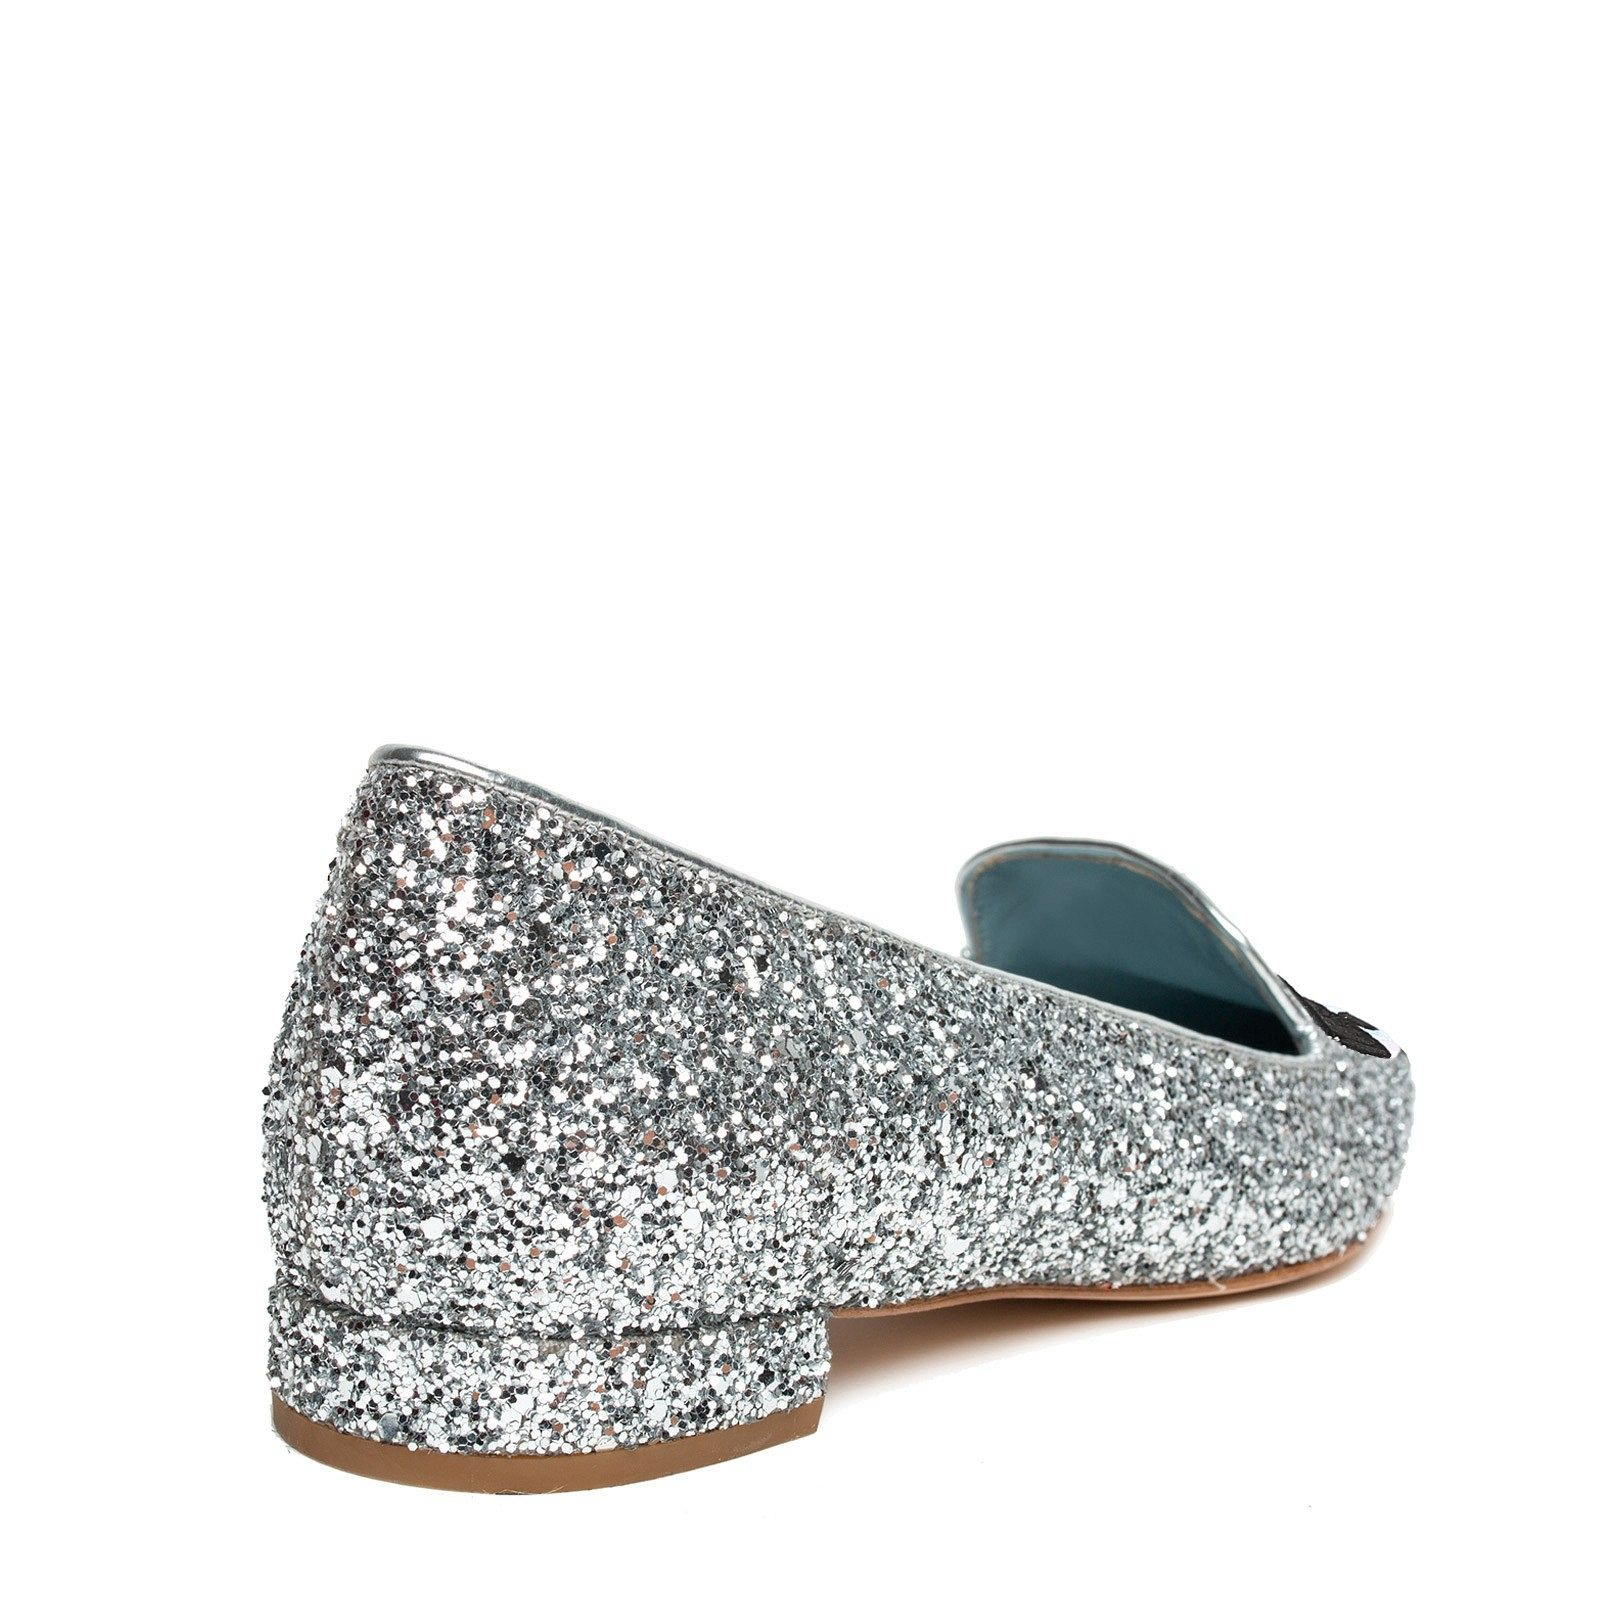 Chiara Ferragni - Flirting Eye Slipper Silver Pointy